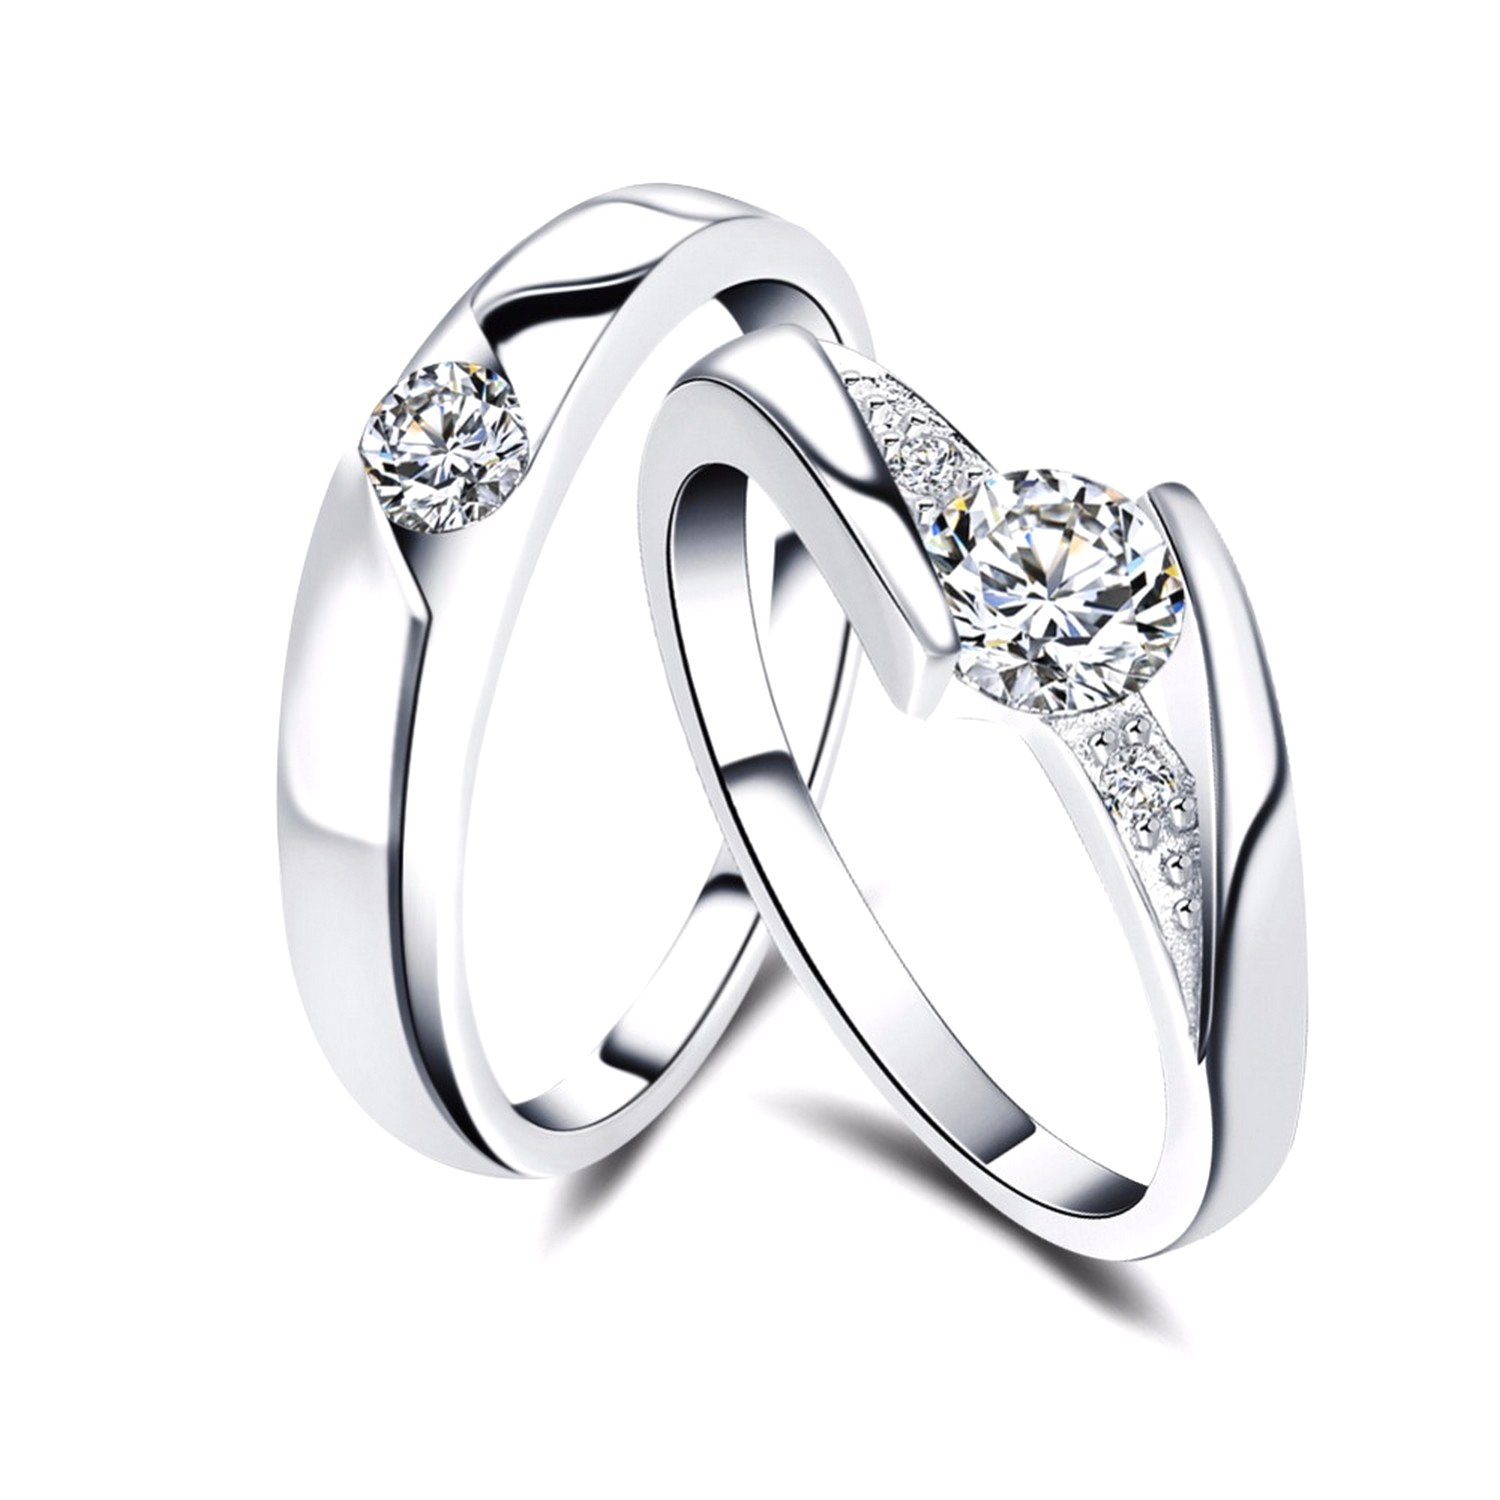 Slyq Jewelry Zircon Couple RingSet Engagement Silver Color eternity ring fashion rings size 10